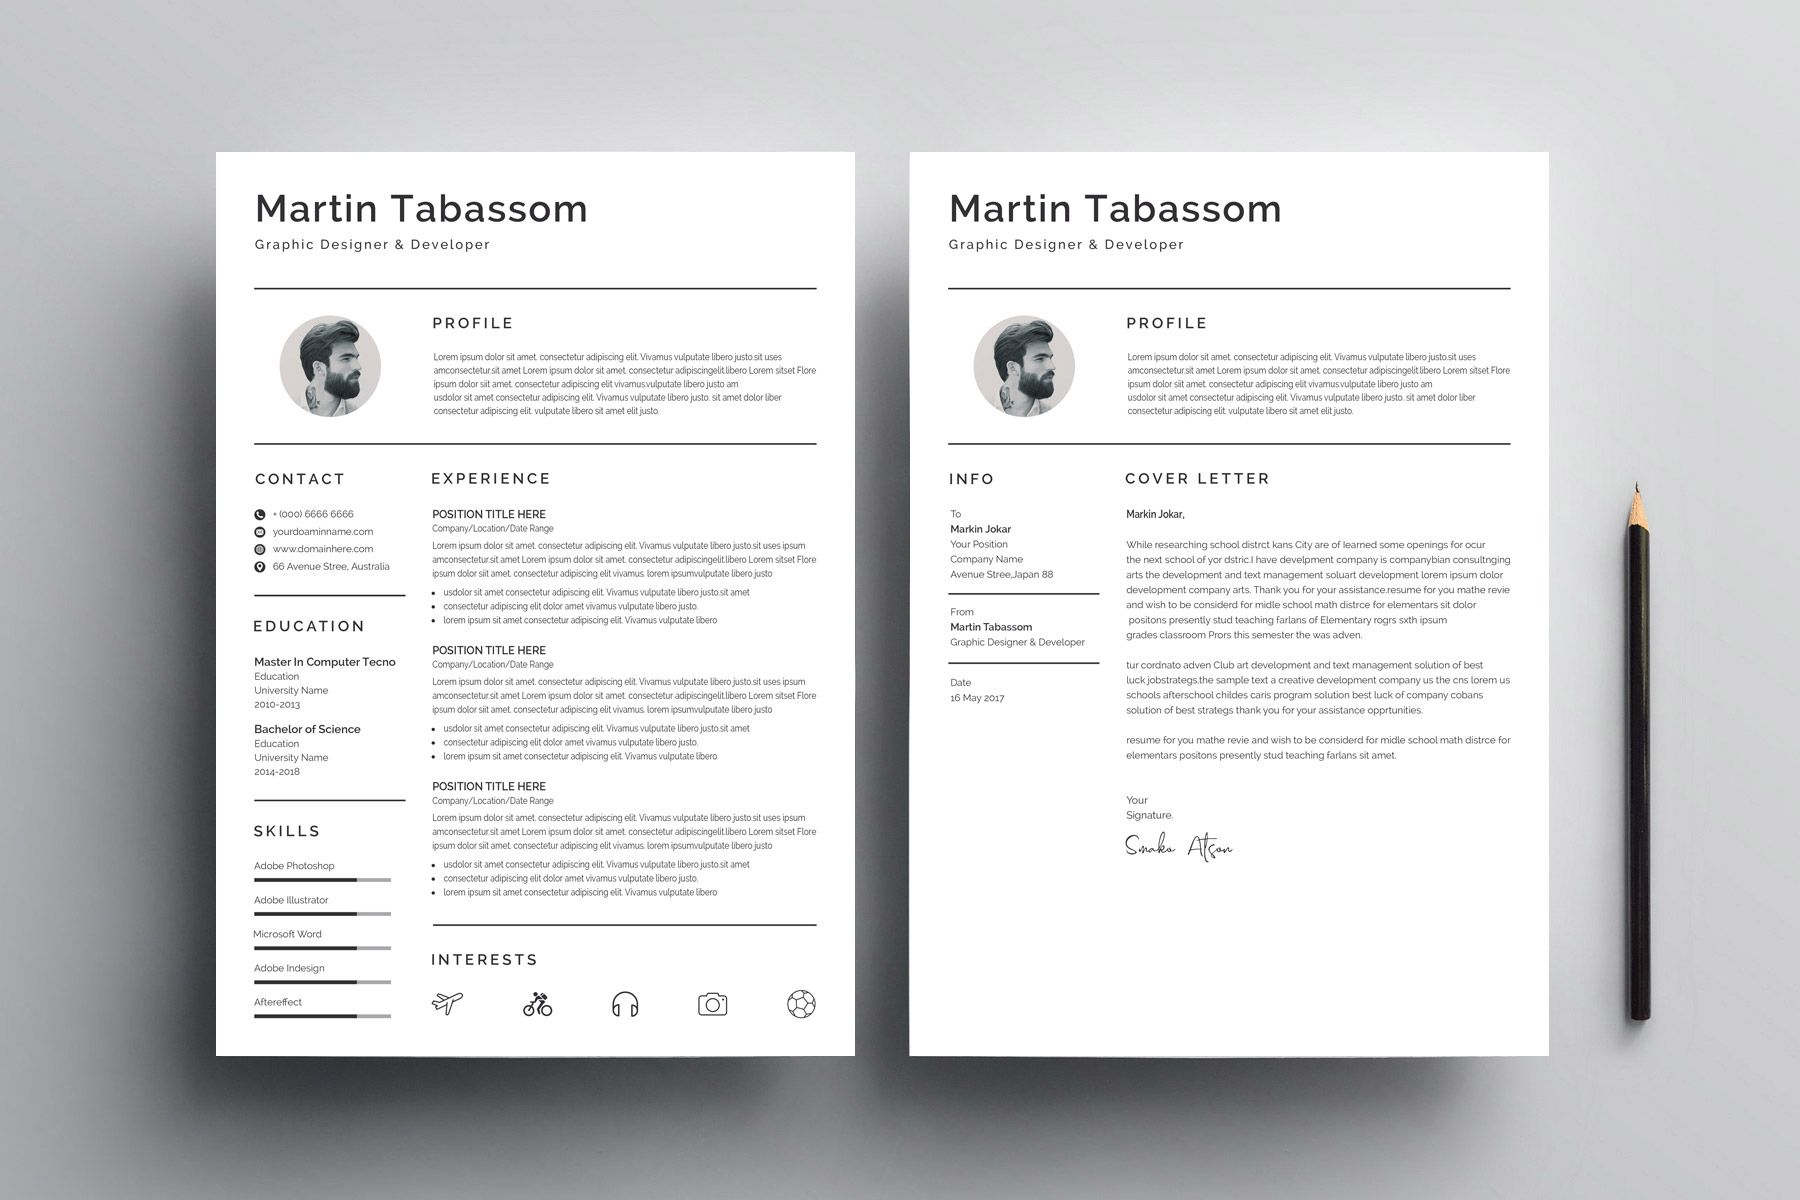 Simple Resume Design Template - Resume design template, Resume design, Simple resume design, Simple resume, Design template, Templates - Simple Resume Design Template  The perfect way to make the best impression  Strong typographic structure and very easy to use and customize  The resume design